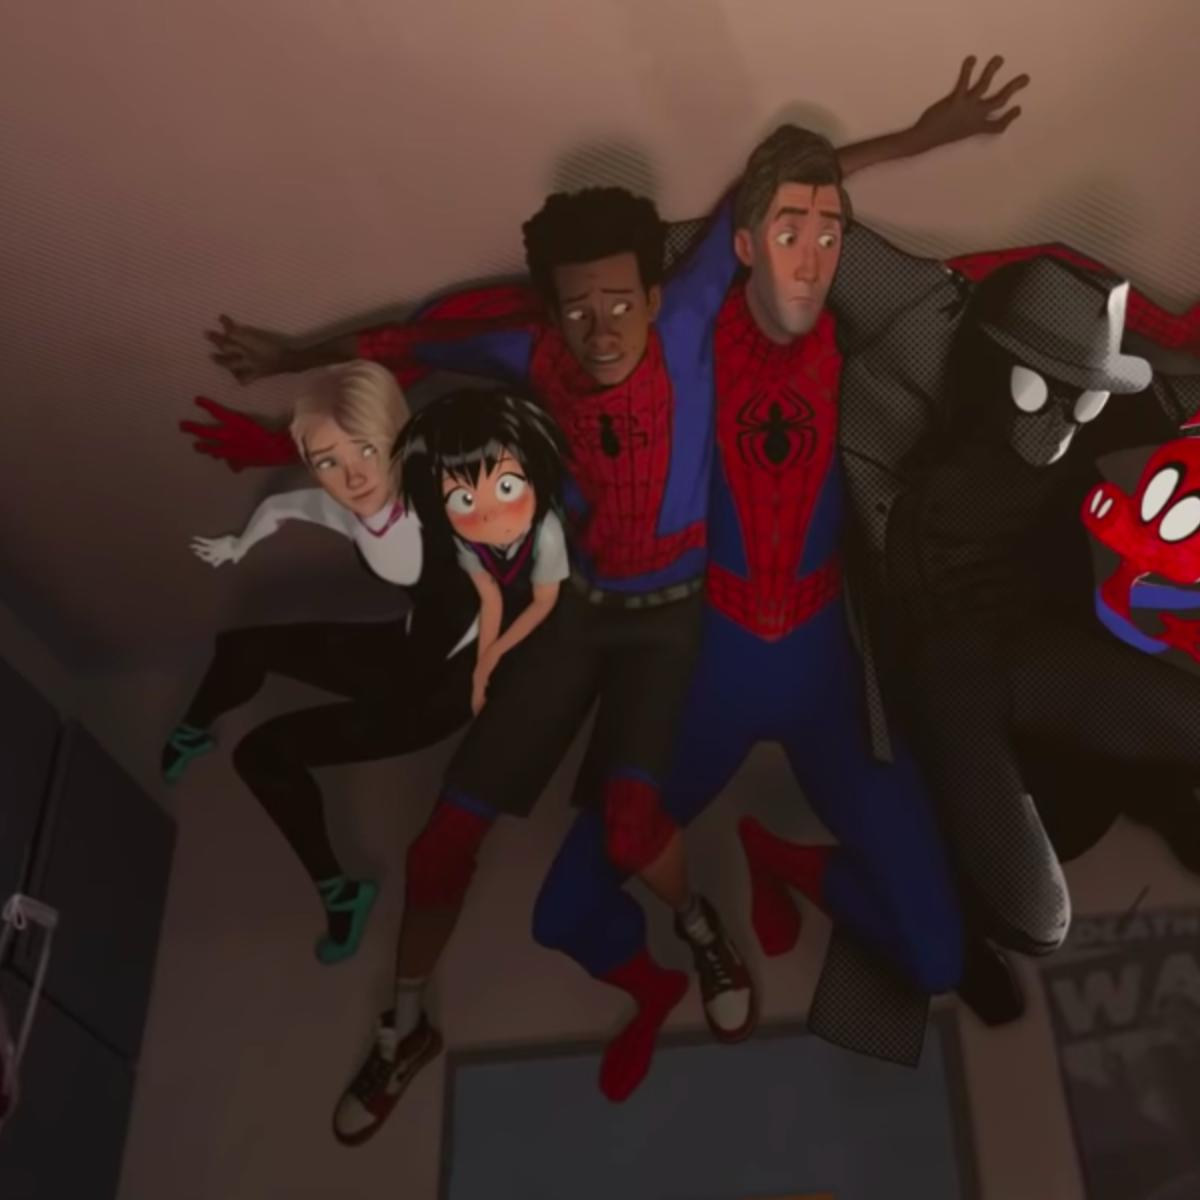 first reviews for into the spider verse say the animated film breathes new life into spider man